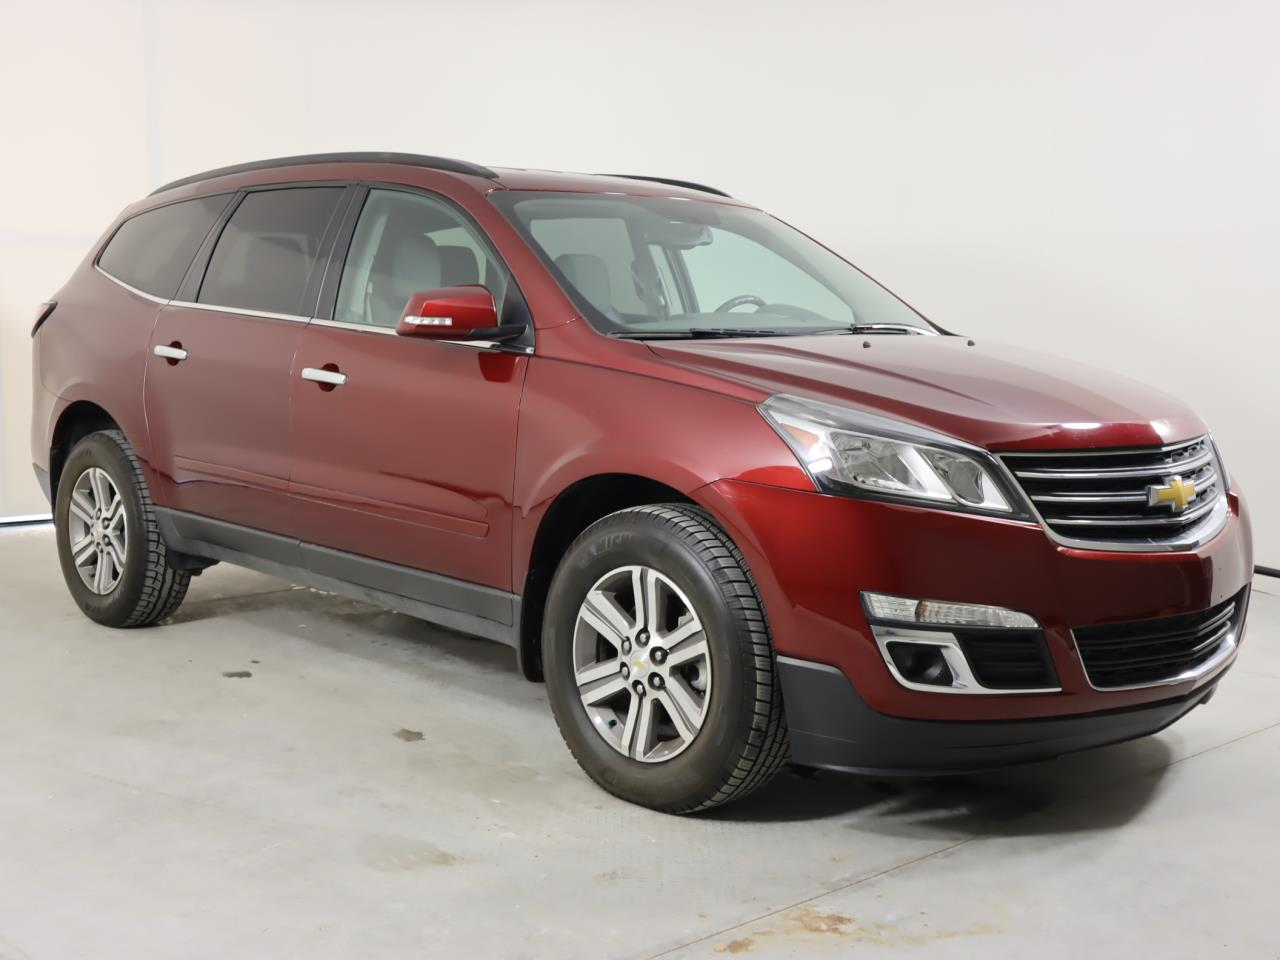 used vehicle - SUV CHEVROLET TRAVERSE 2017